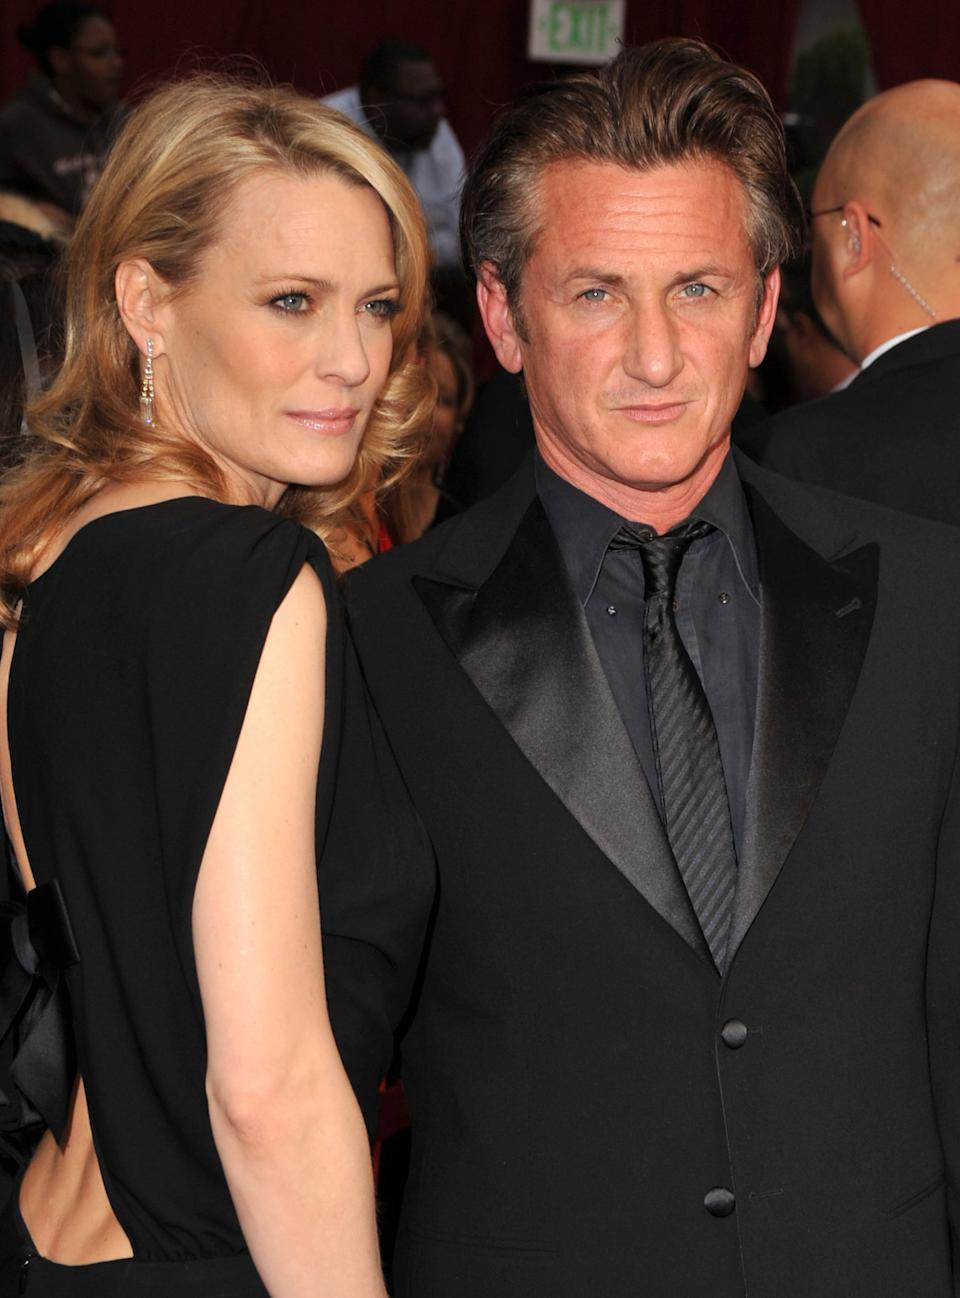 Robin Wright Penn and Sean Penn arrives at the 81st Academy Awards at The Kodak Theatre on February 22, 2009 in Hollywood, California.